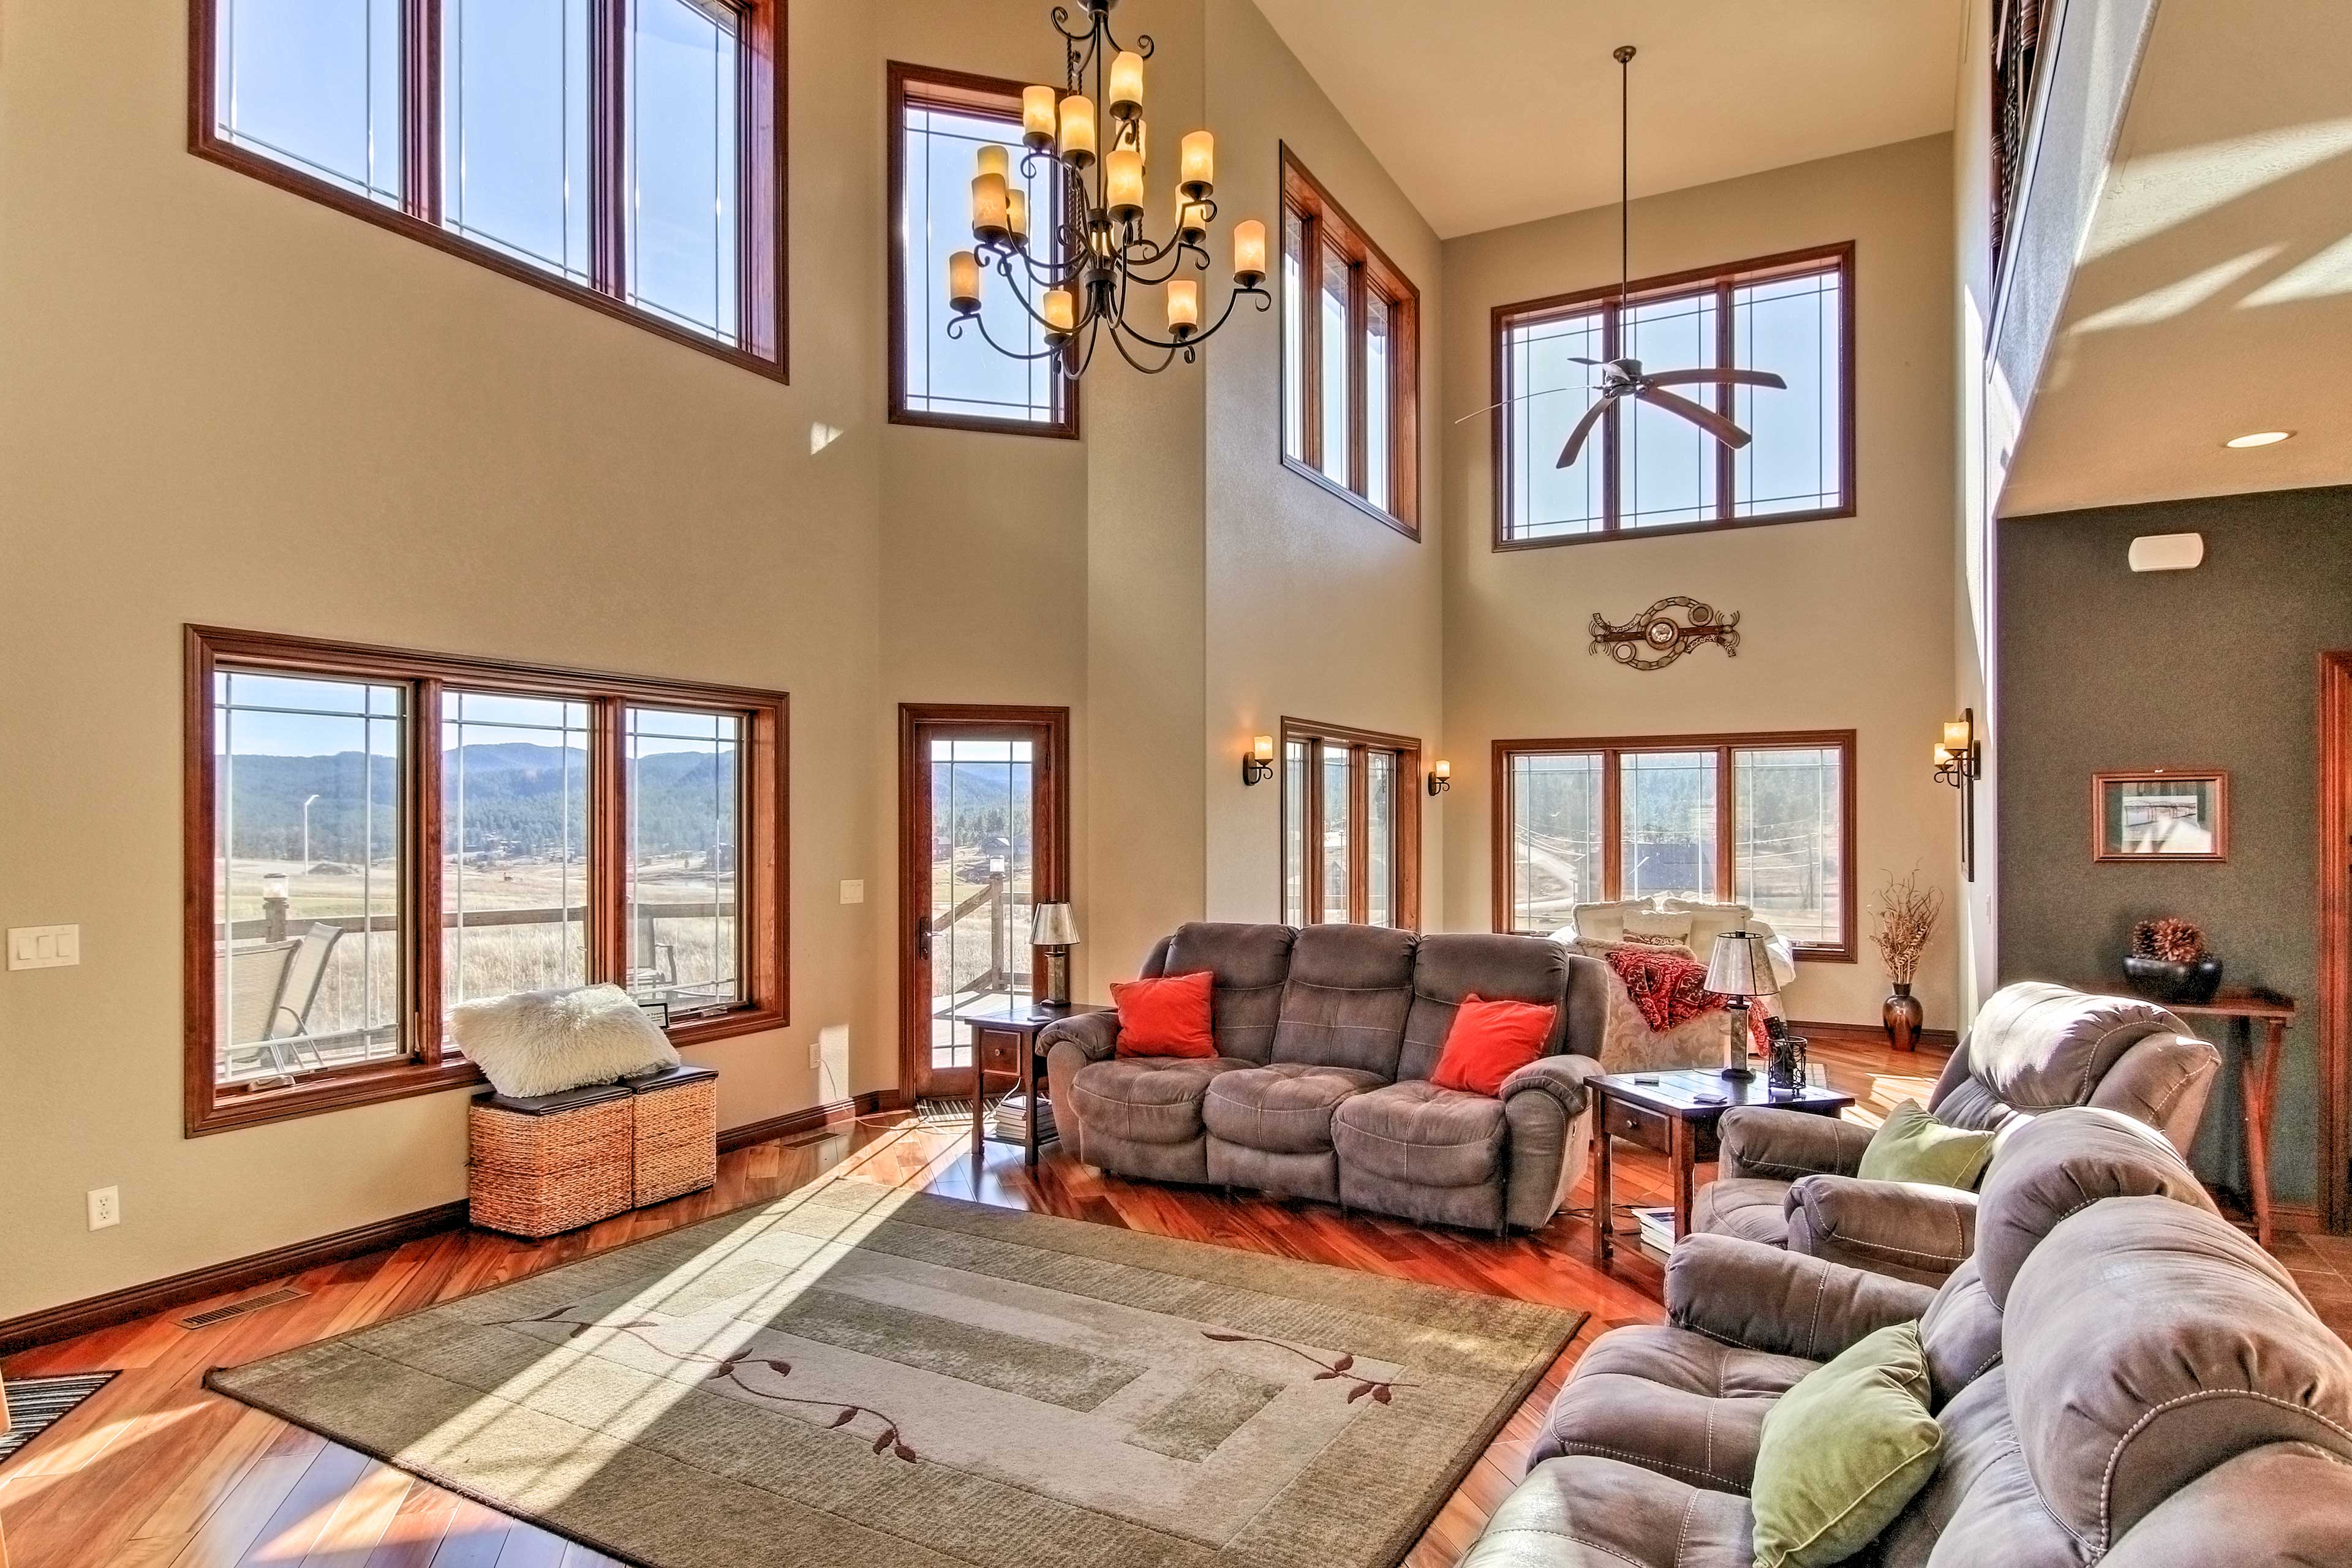 Cathedral ceilings highlight the living space with accommodations for large groups.